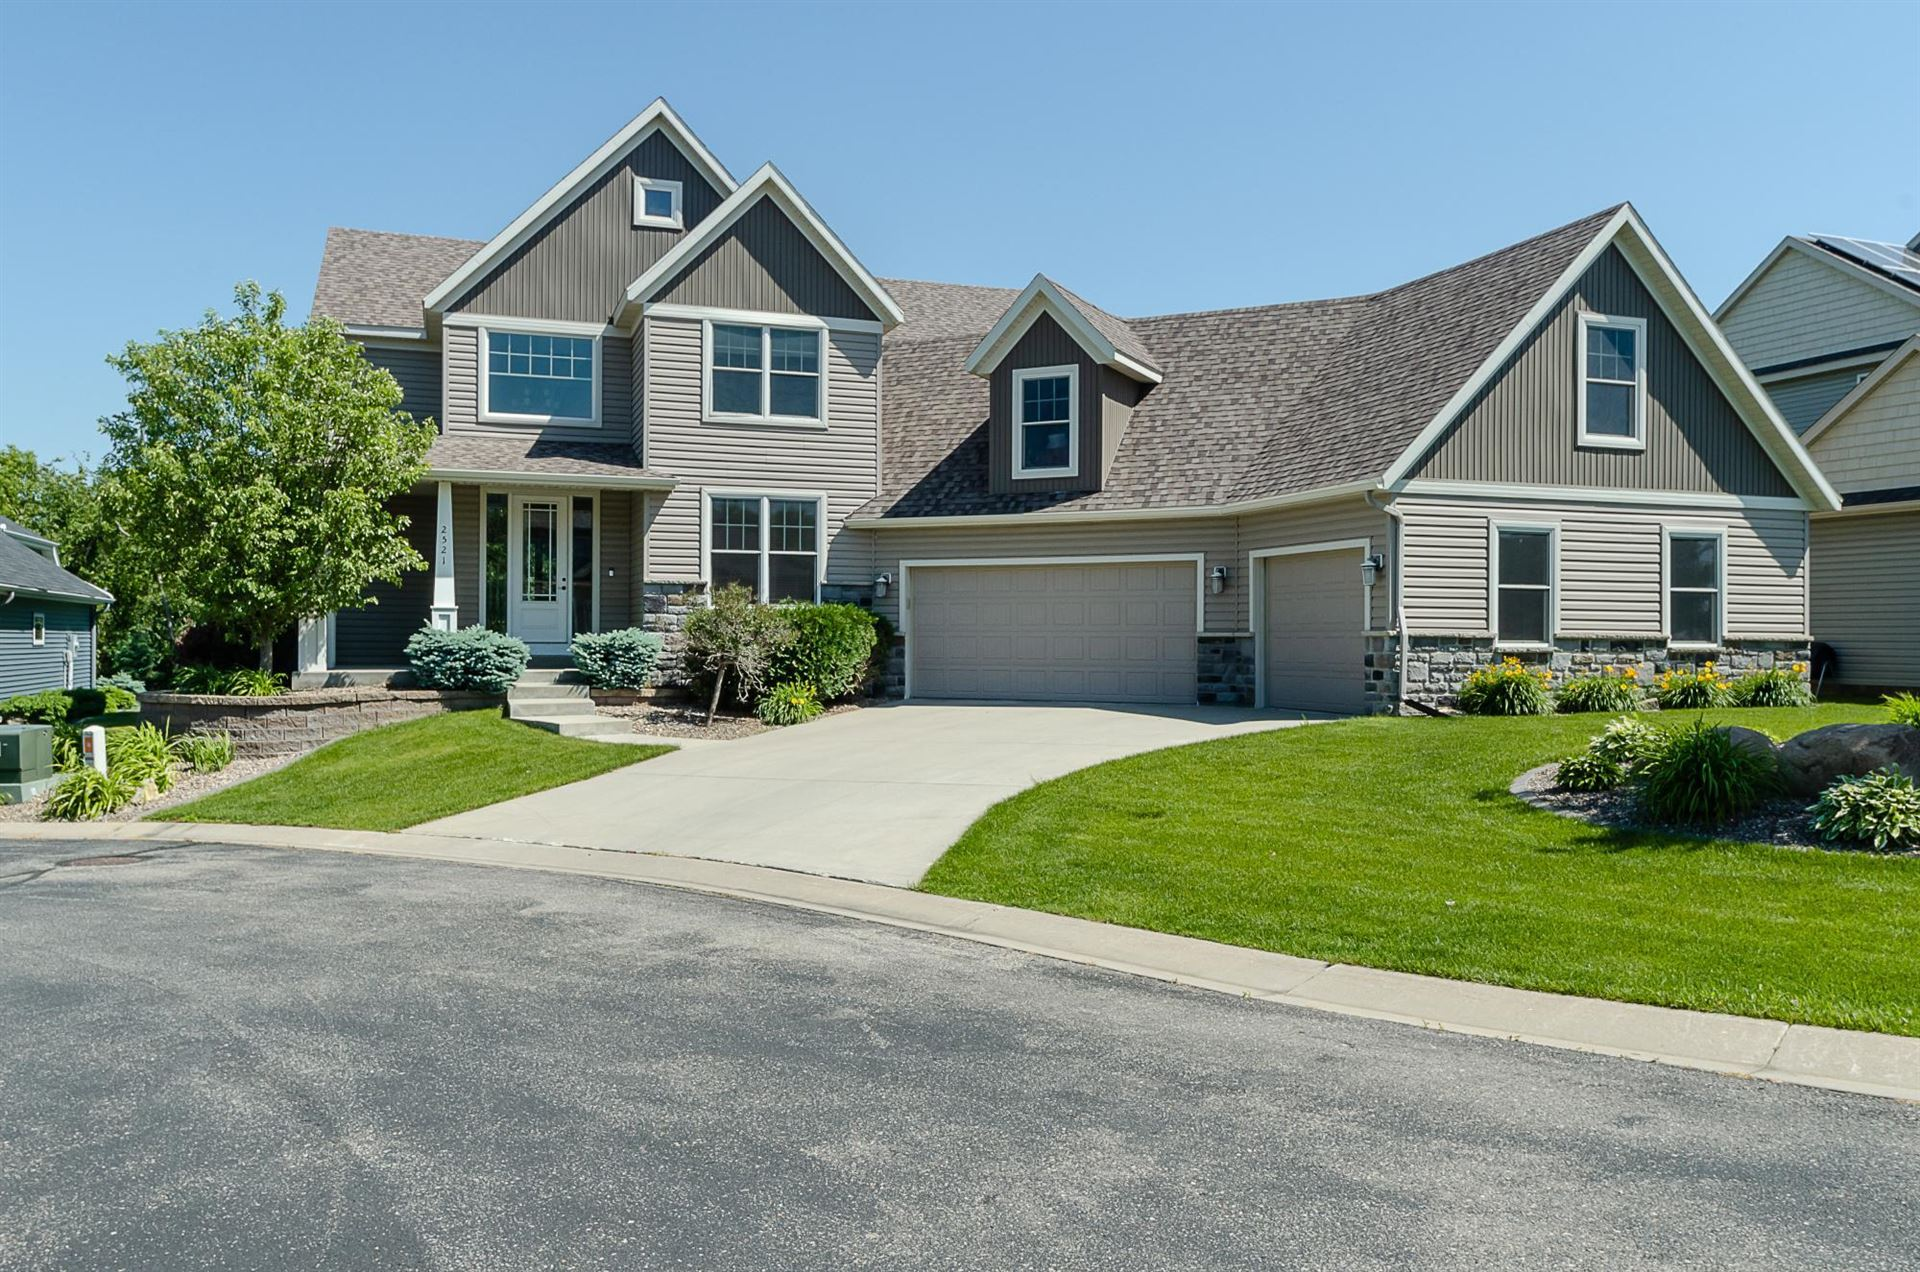 2521 Overland Point Circle NW, Rochester, MN 55901 - MLS#: 5562961